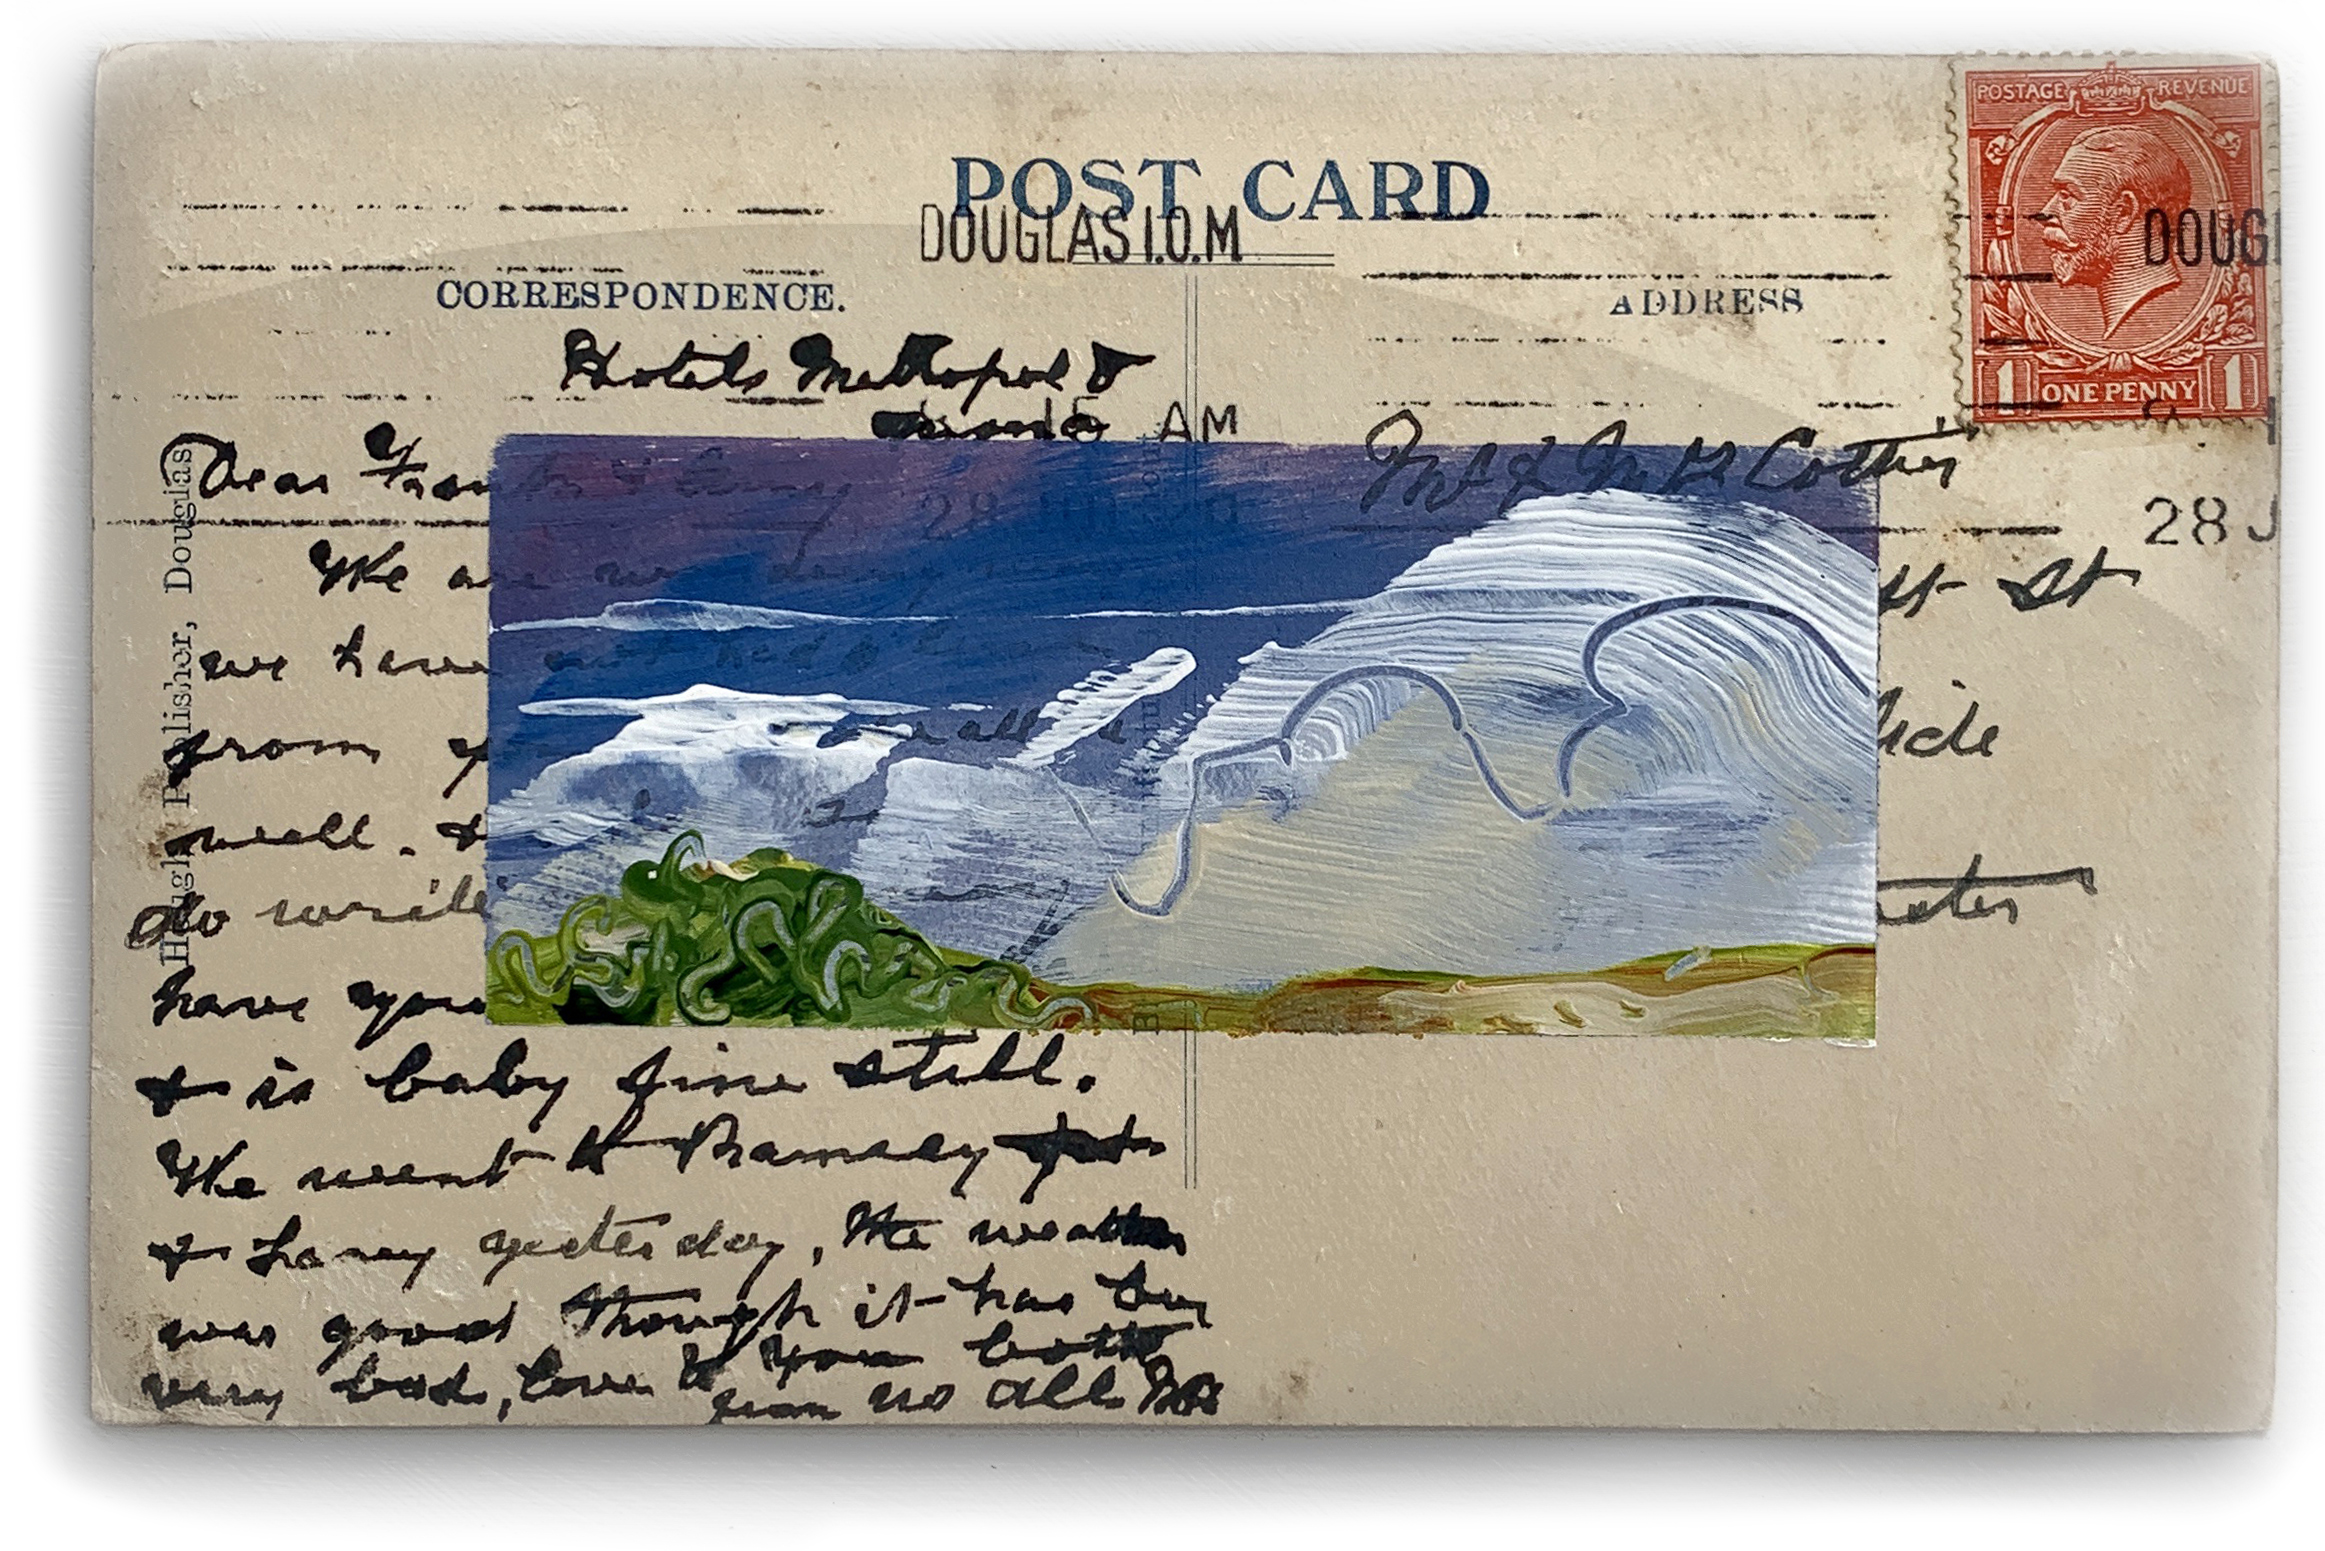 Antique abstract landscape on postcard by artist Micheal Statham